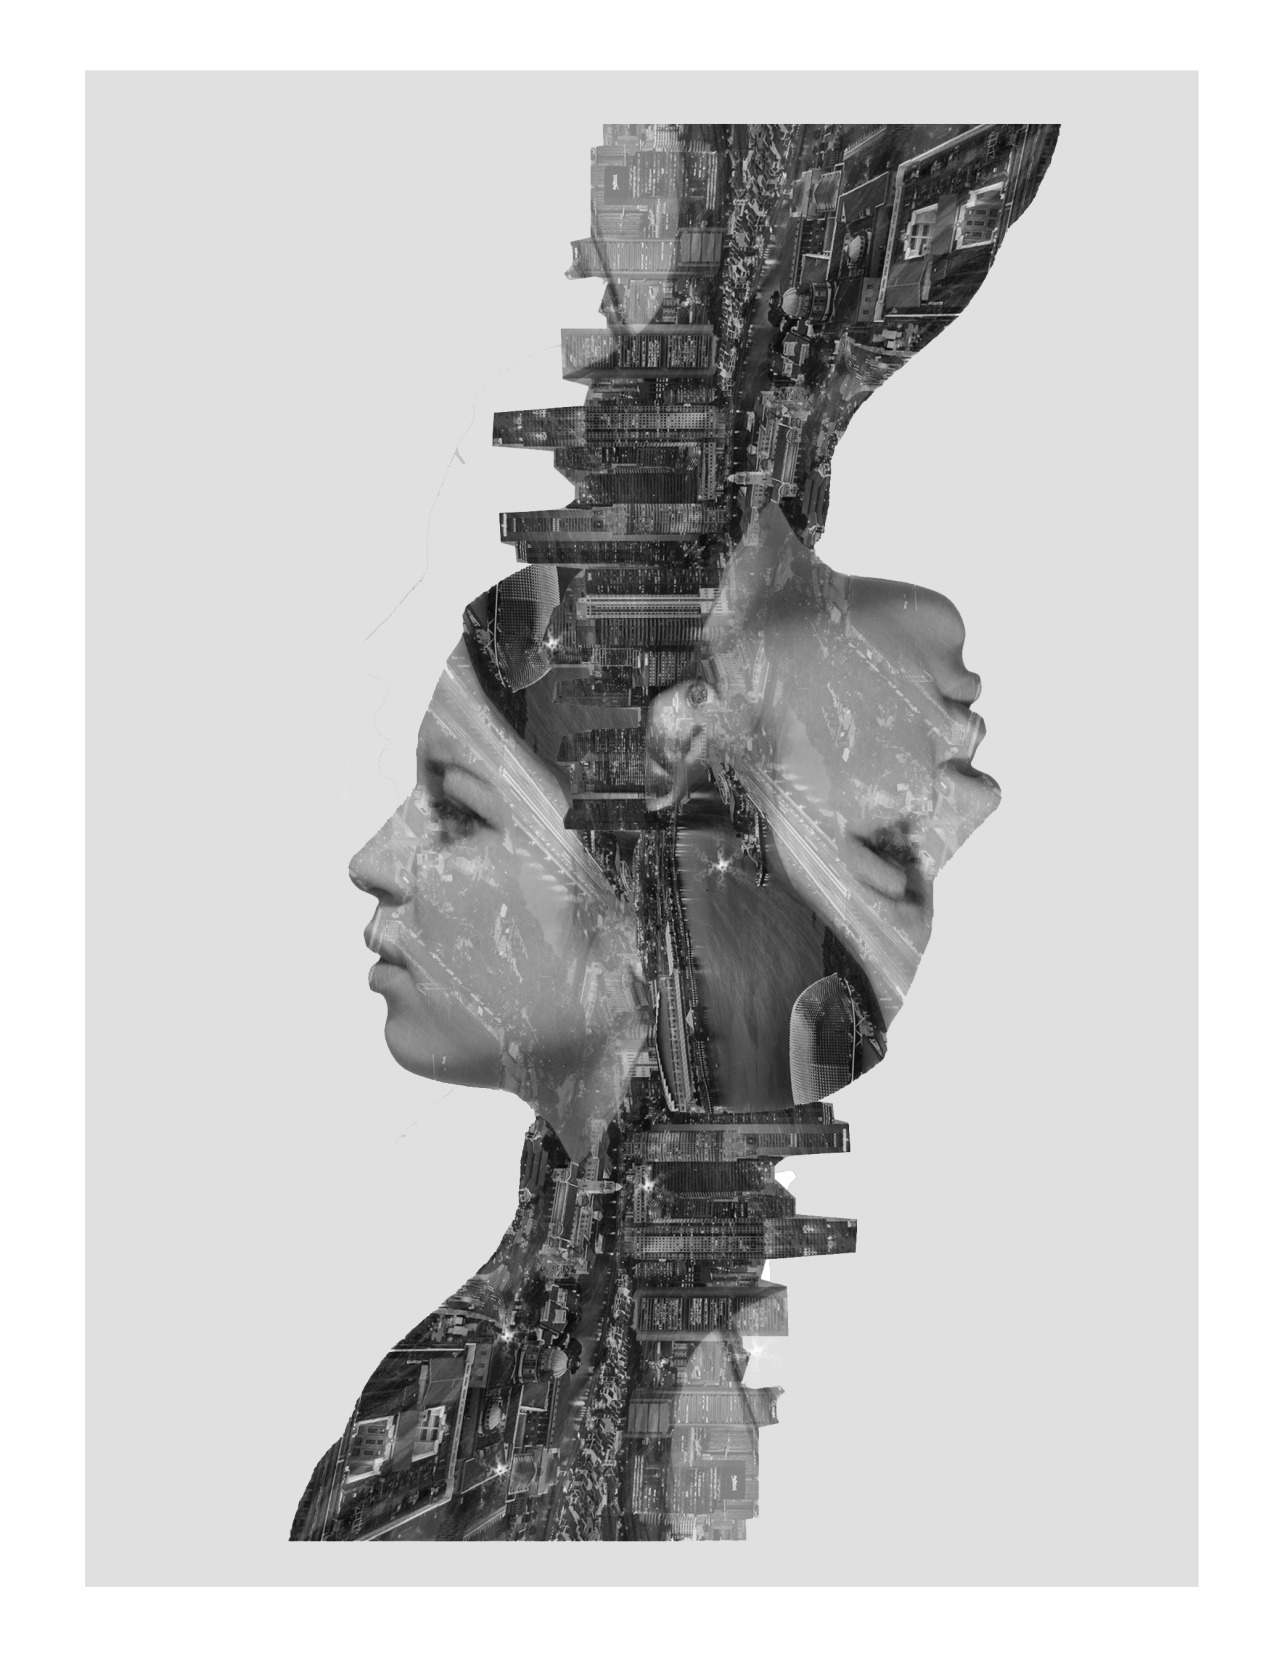 tumblropenarts:  Double Exposure Effect - Singapore http://attackofthepenis.tumblr.com/